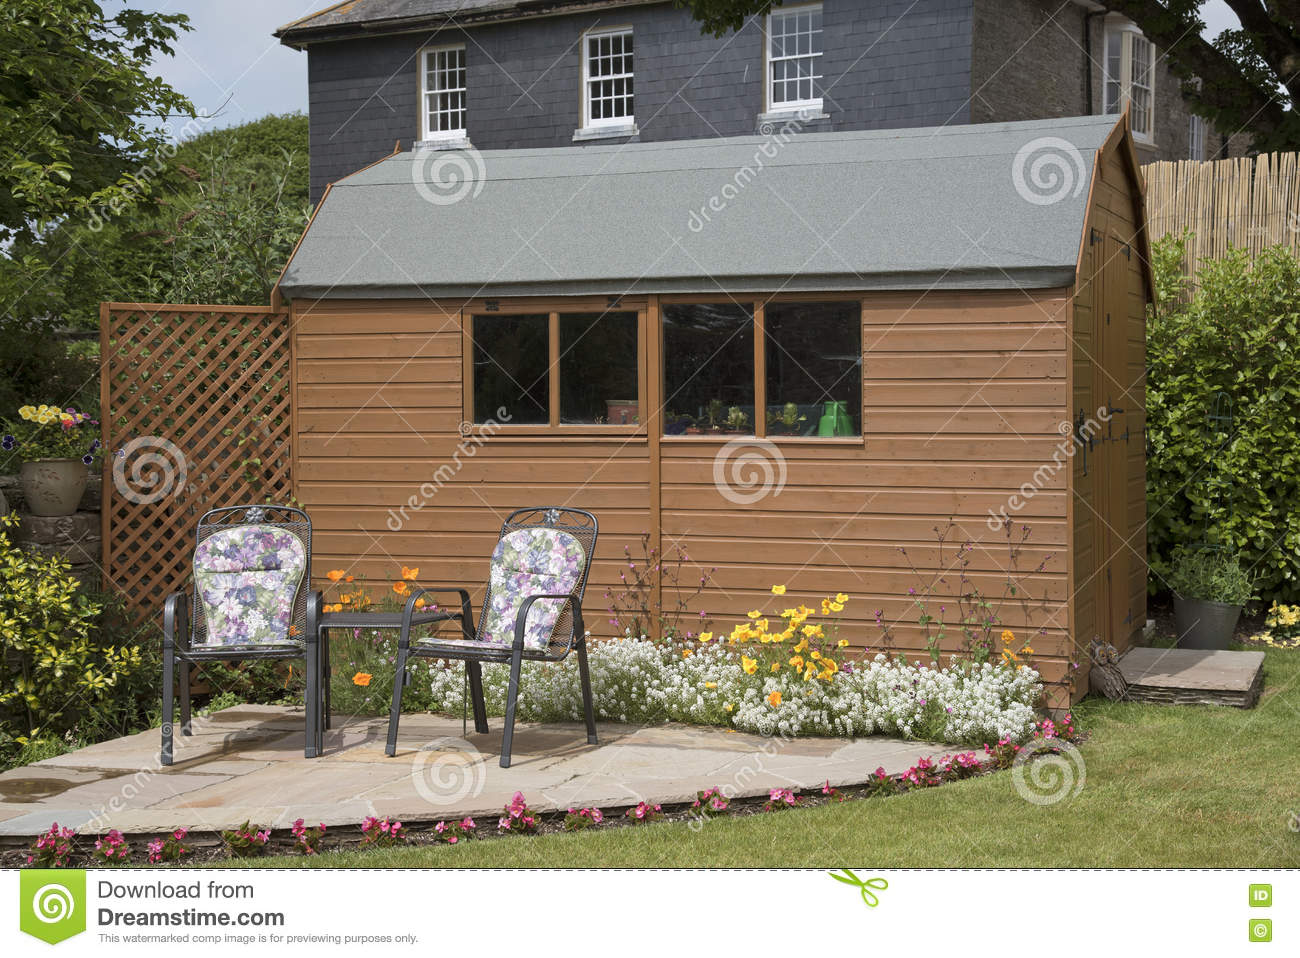 Garden Shed And A Small Patio Stock Photo - Image of landscape ...